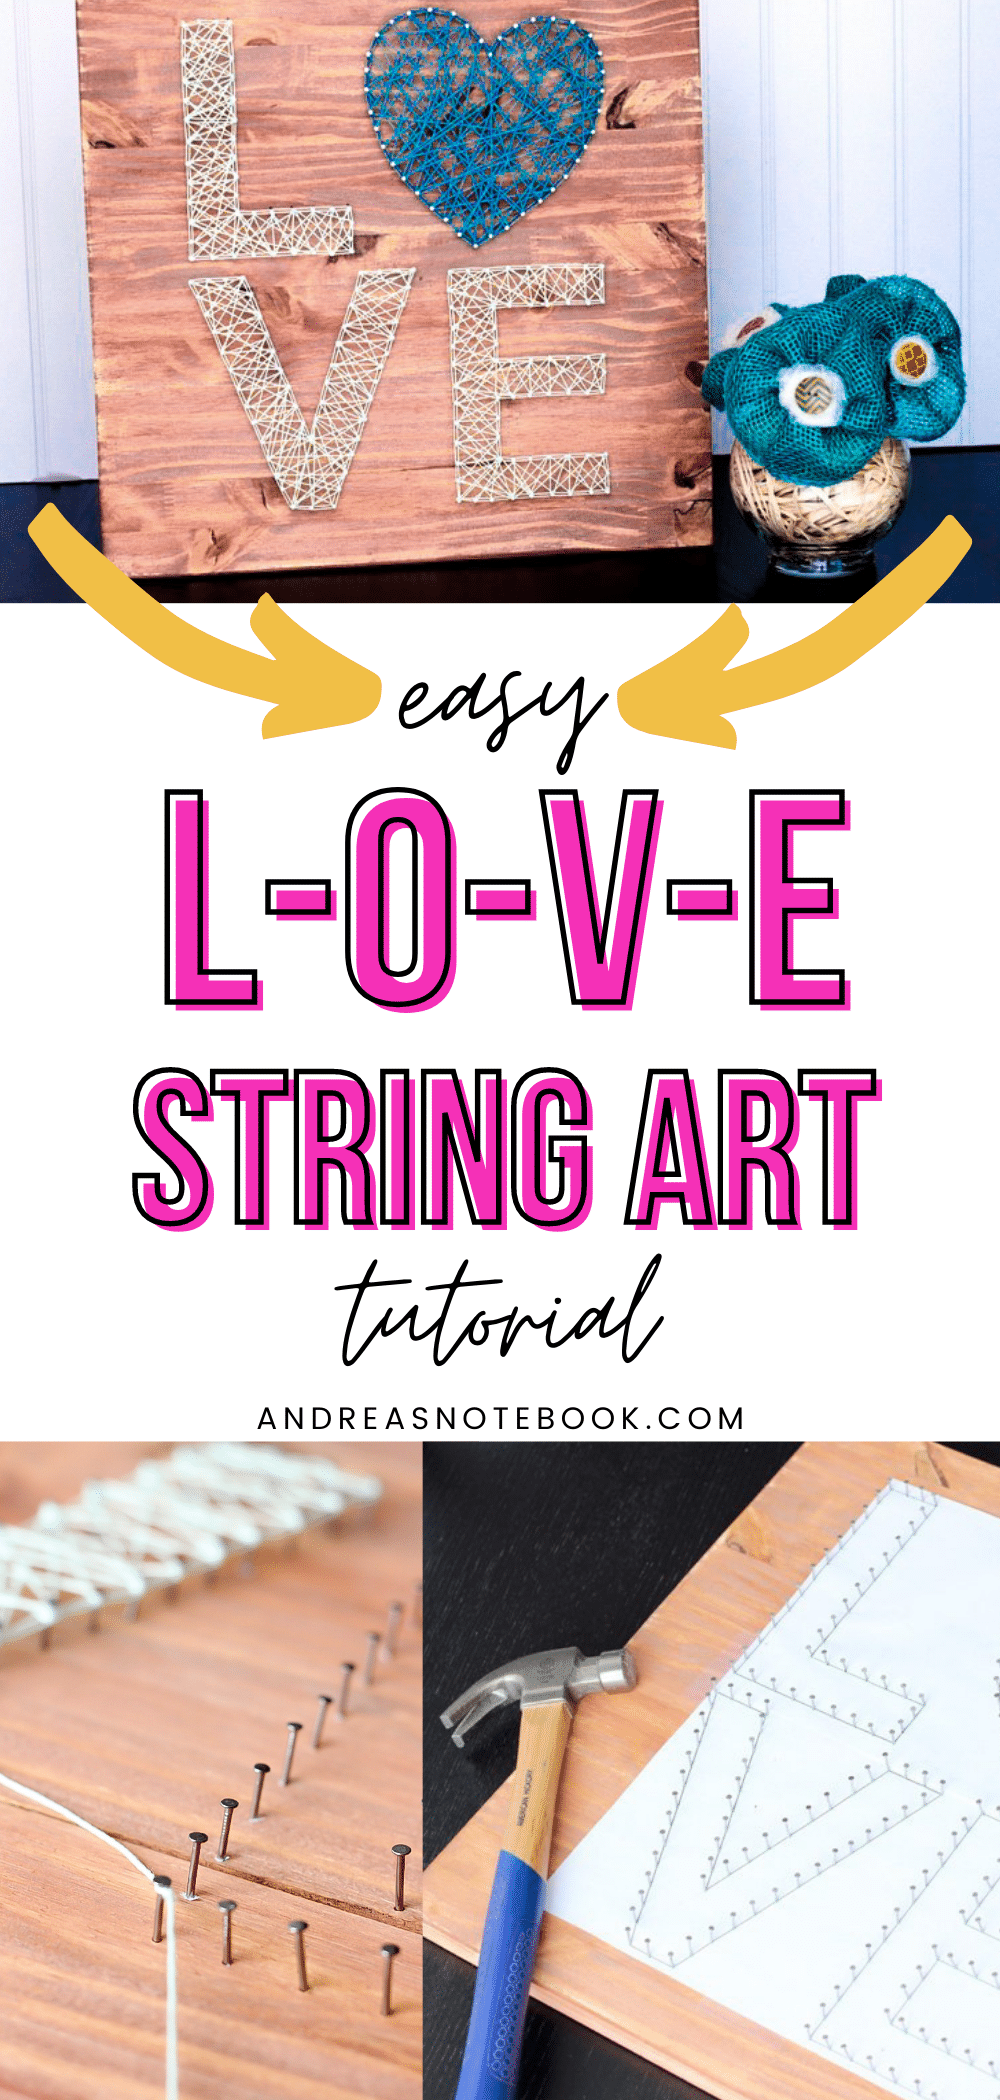 """collage- text says """"easy L-O-V-E string art tutorial"""". Photos of wooden board with nails and strings forming the letters LOVE. Up close photo of string wrapped around nail and photo of paper template on board showing where nails should be"""